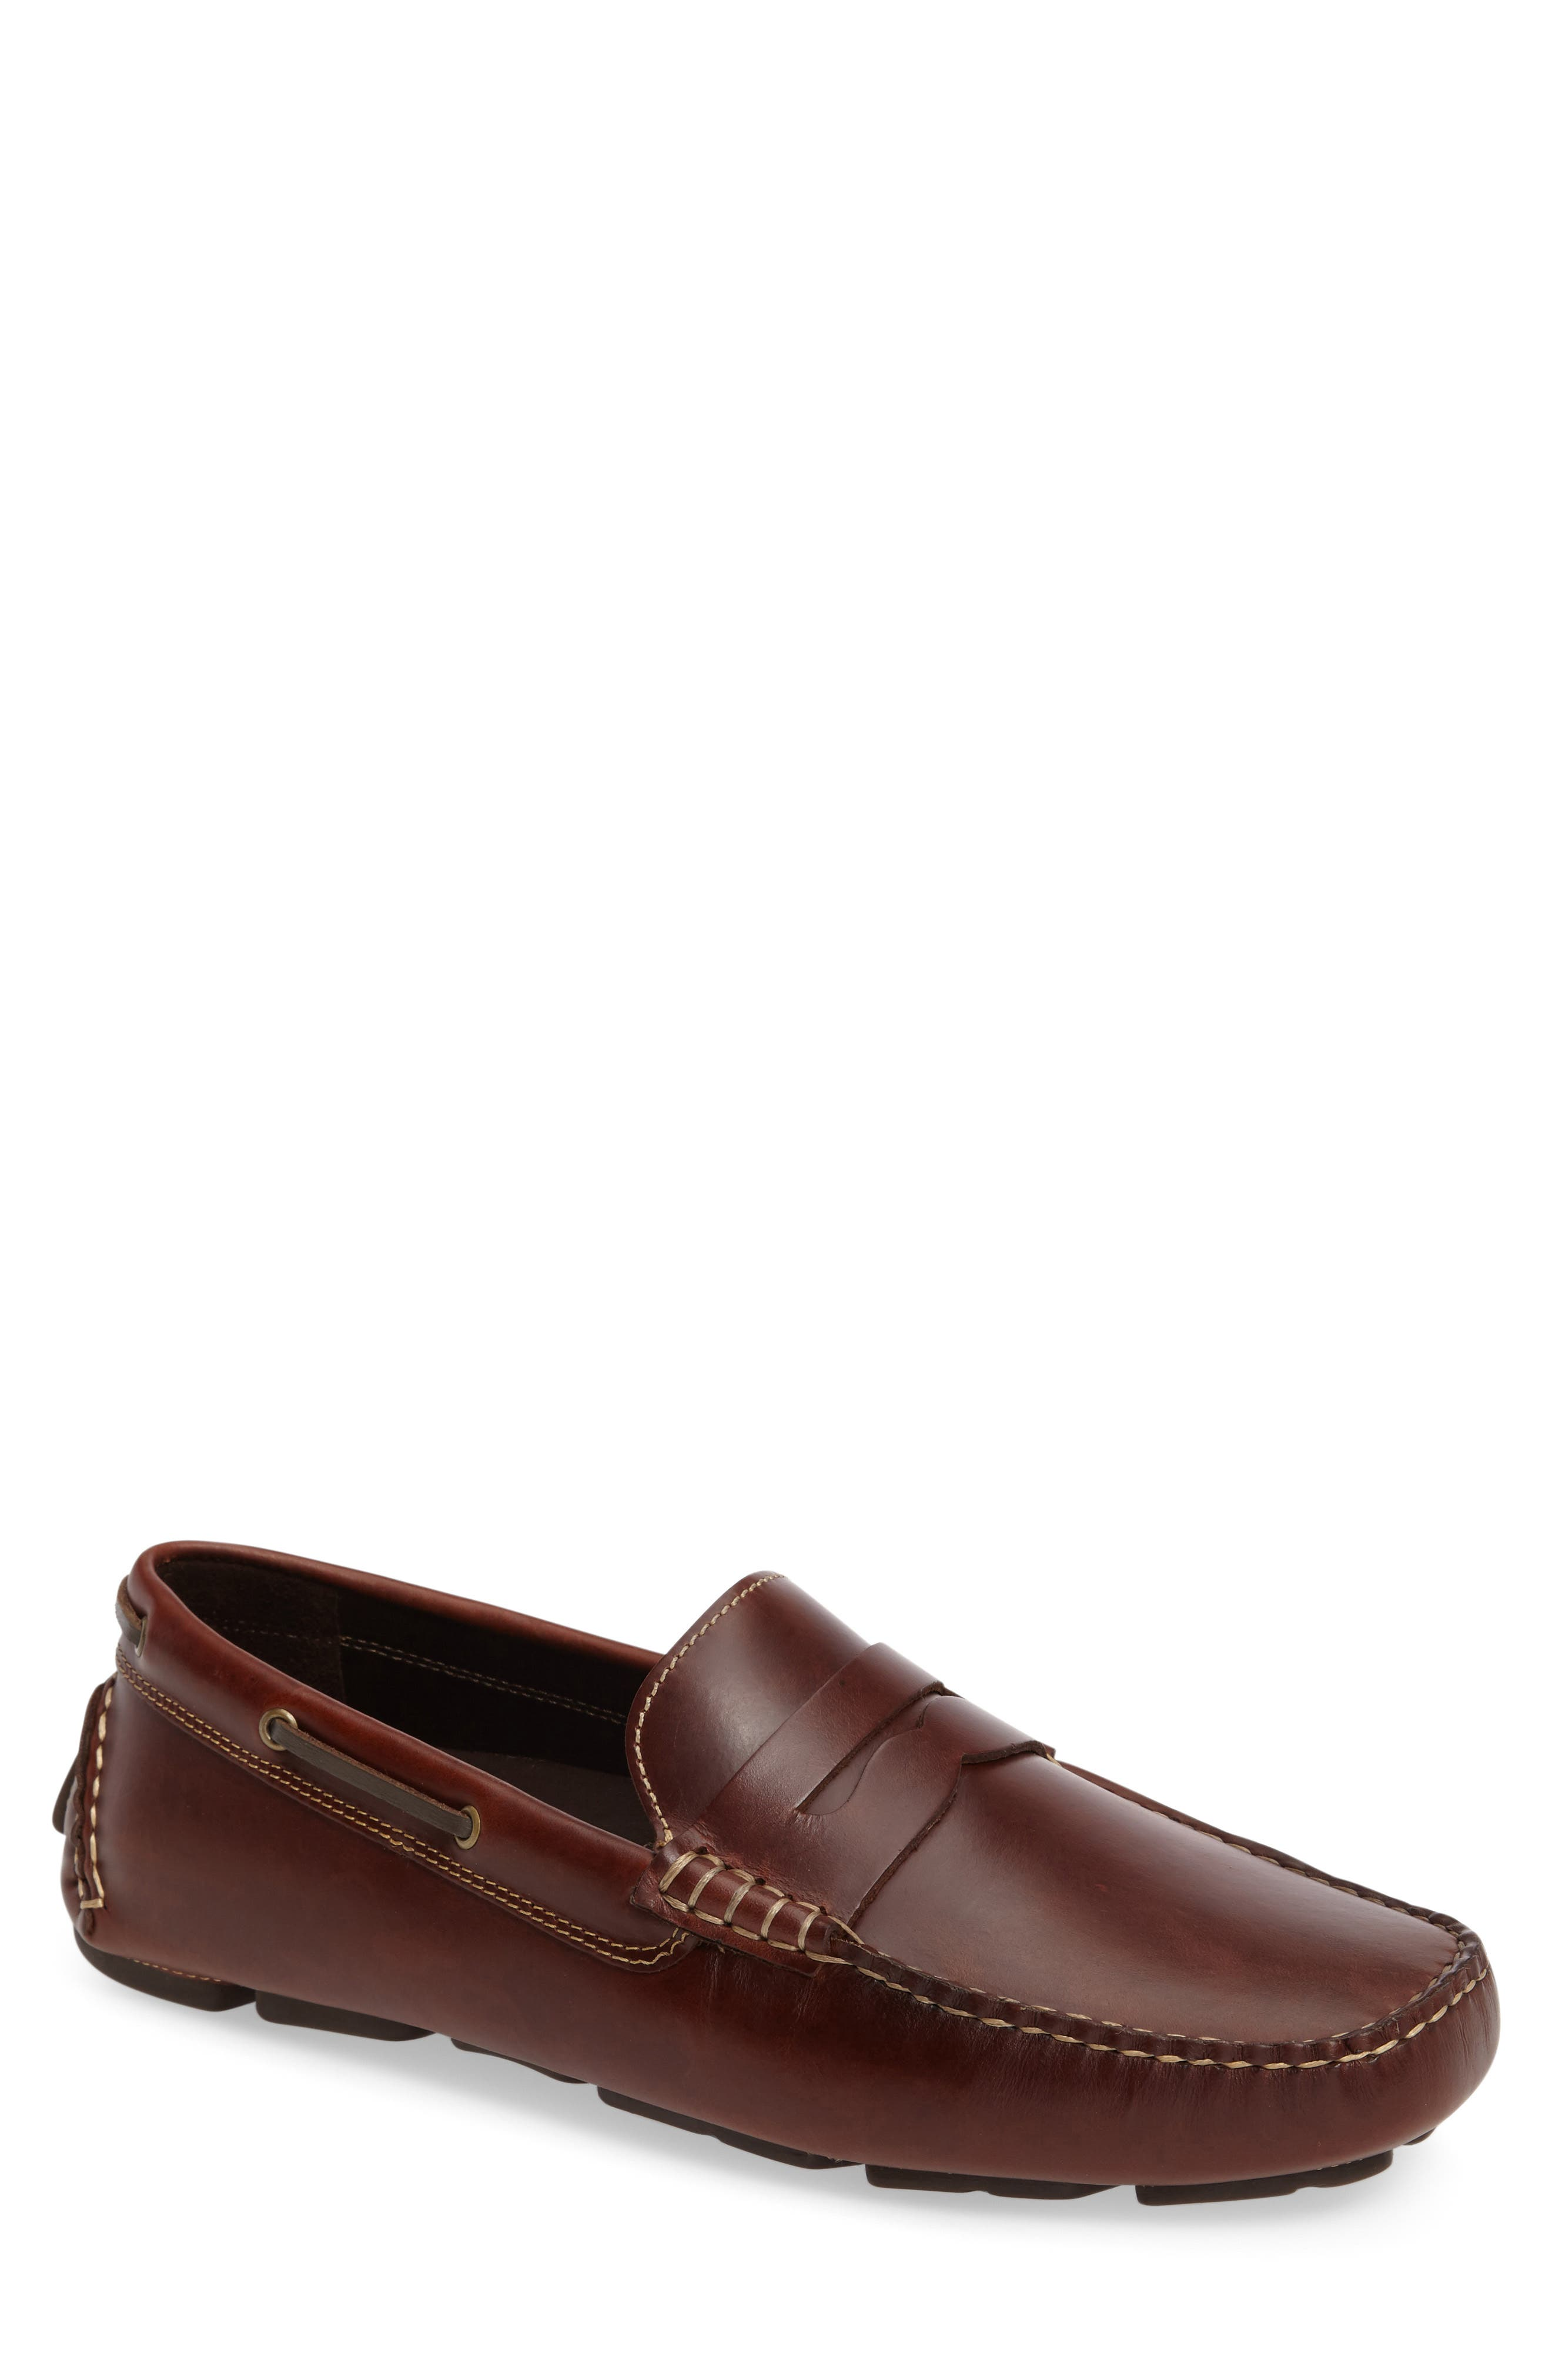 Gibson Penny Driving Loafer,                             Main thumbnail 1, color,                             TAN LEATHER